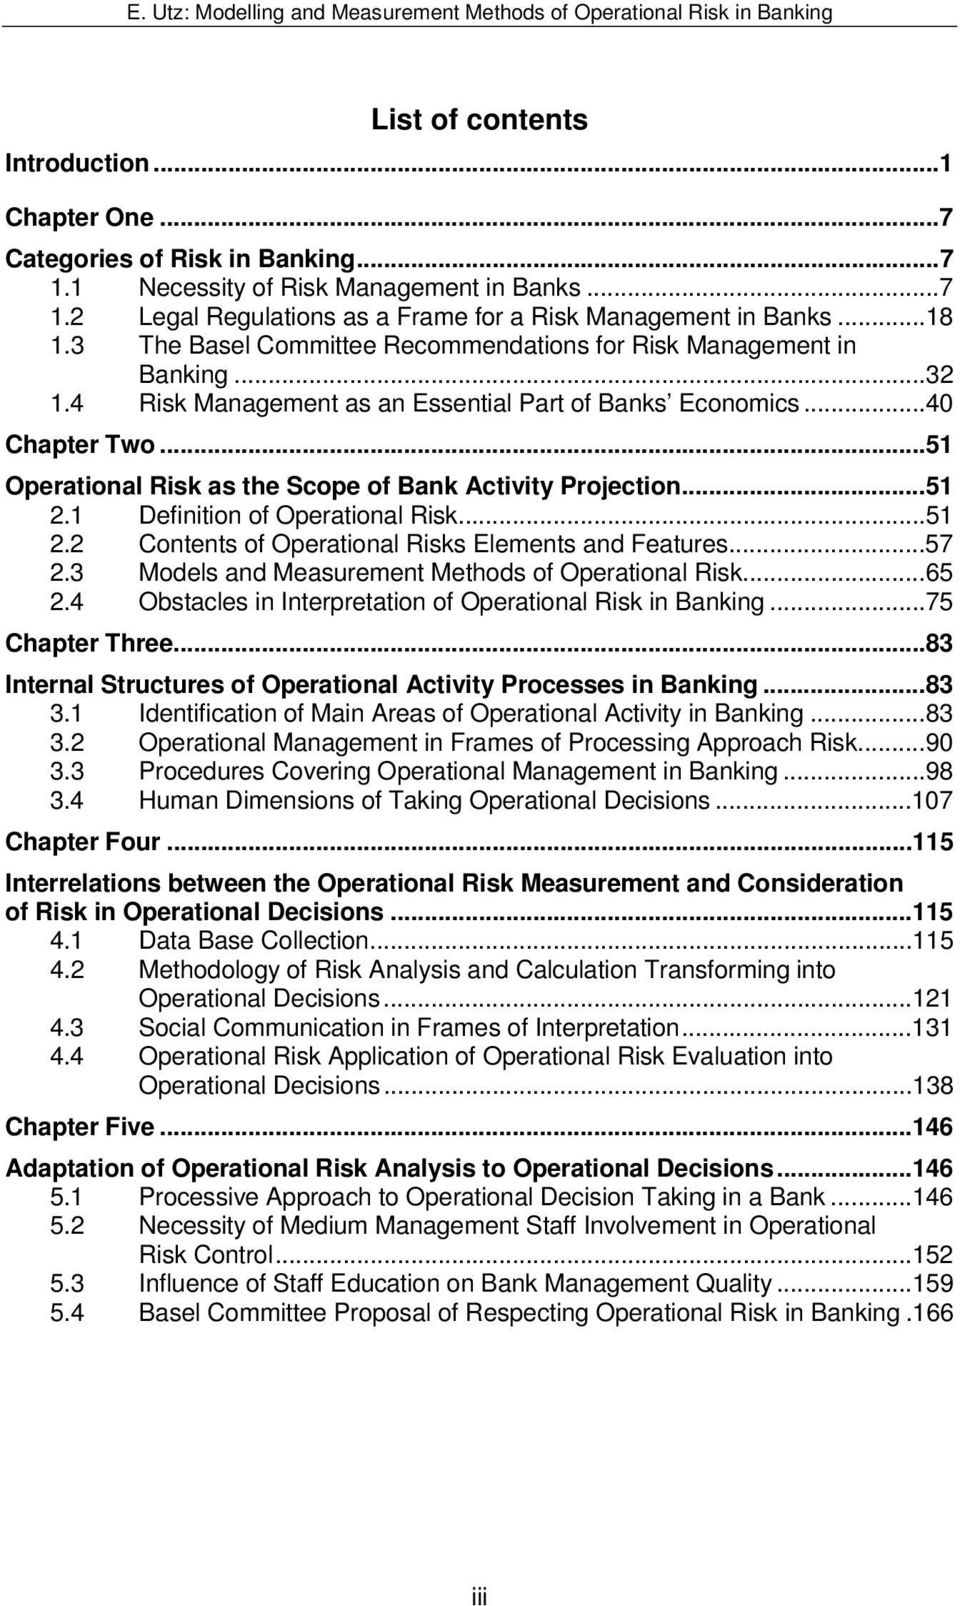 ..51 Operational Risk as the Scope of Bank Activity Projection...51 2.1 Definition of Operational Risk...51 2.2 Contents of Operational Risks Elements and Features...57 2.